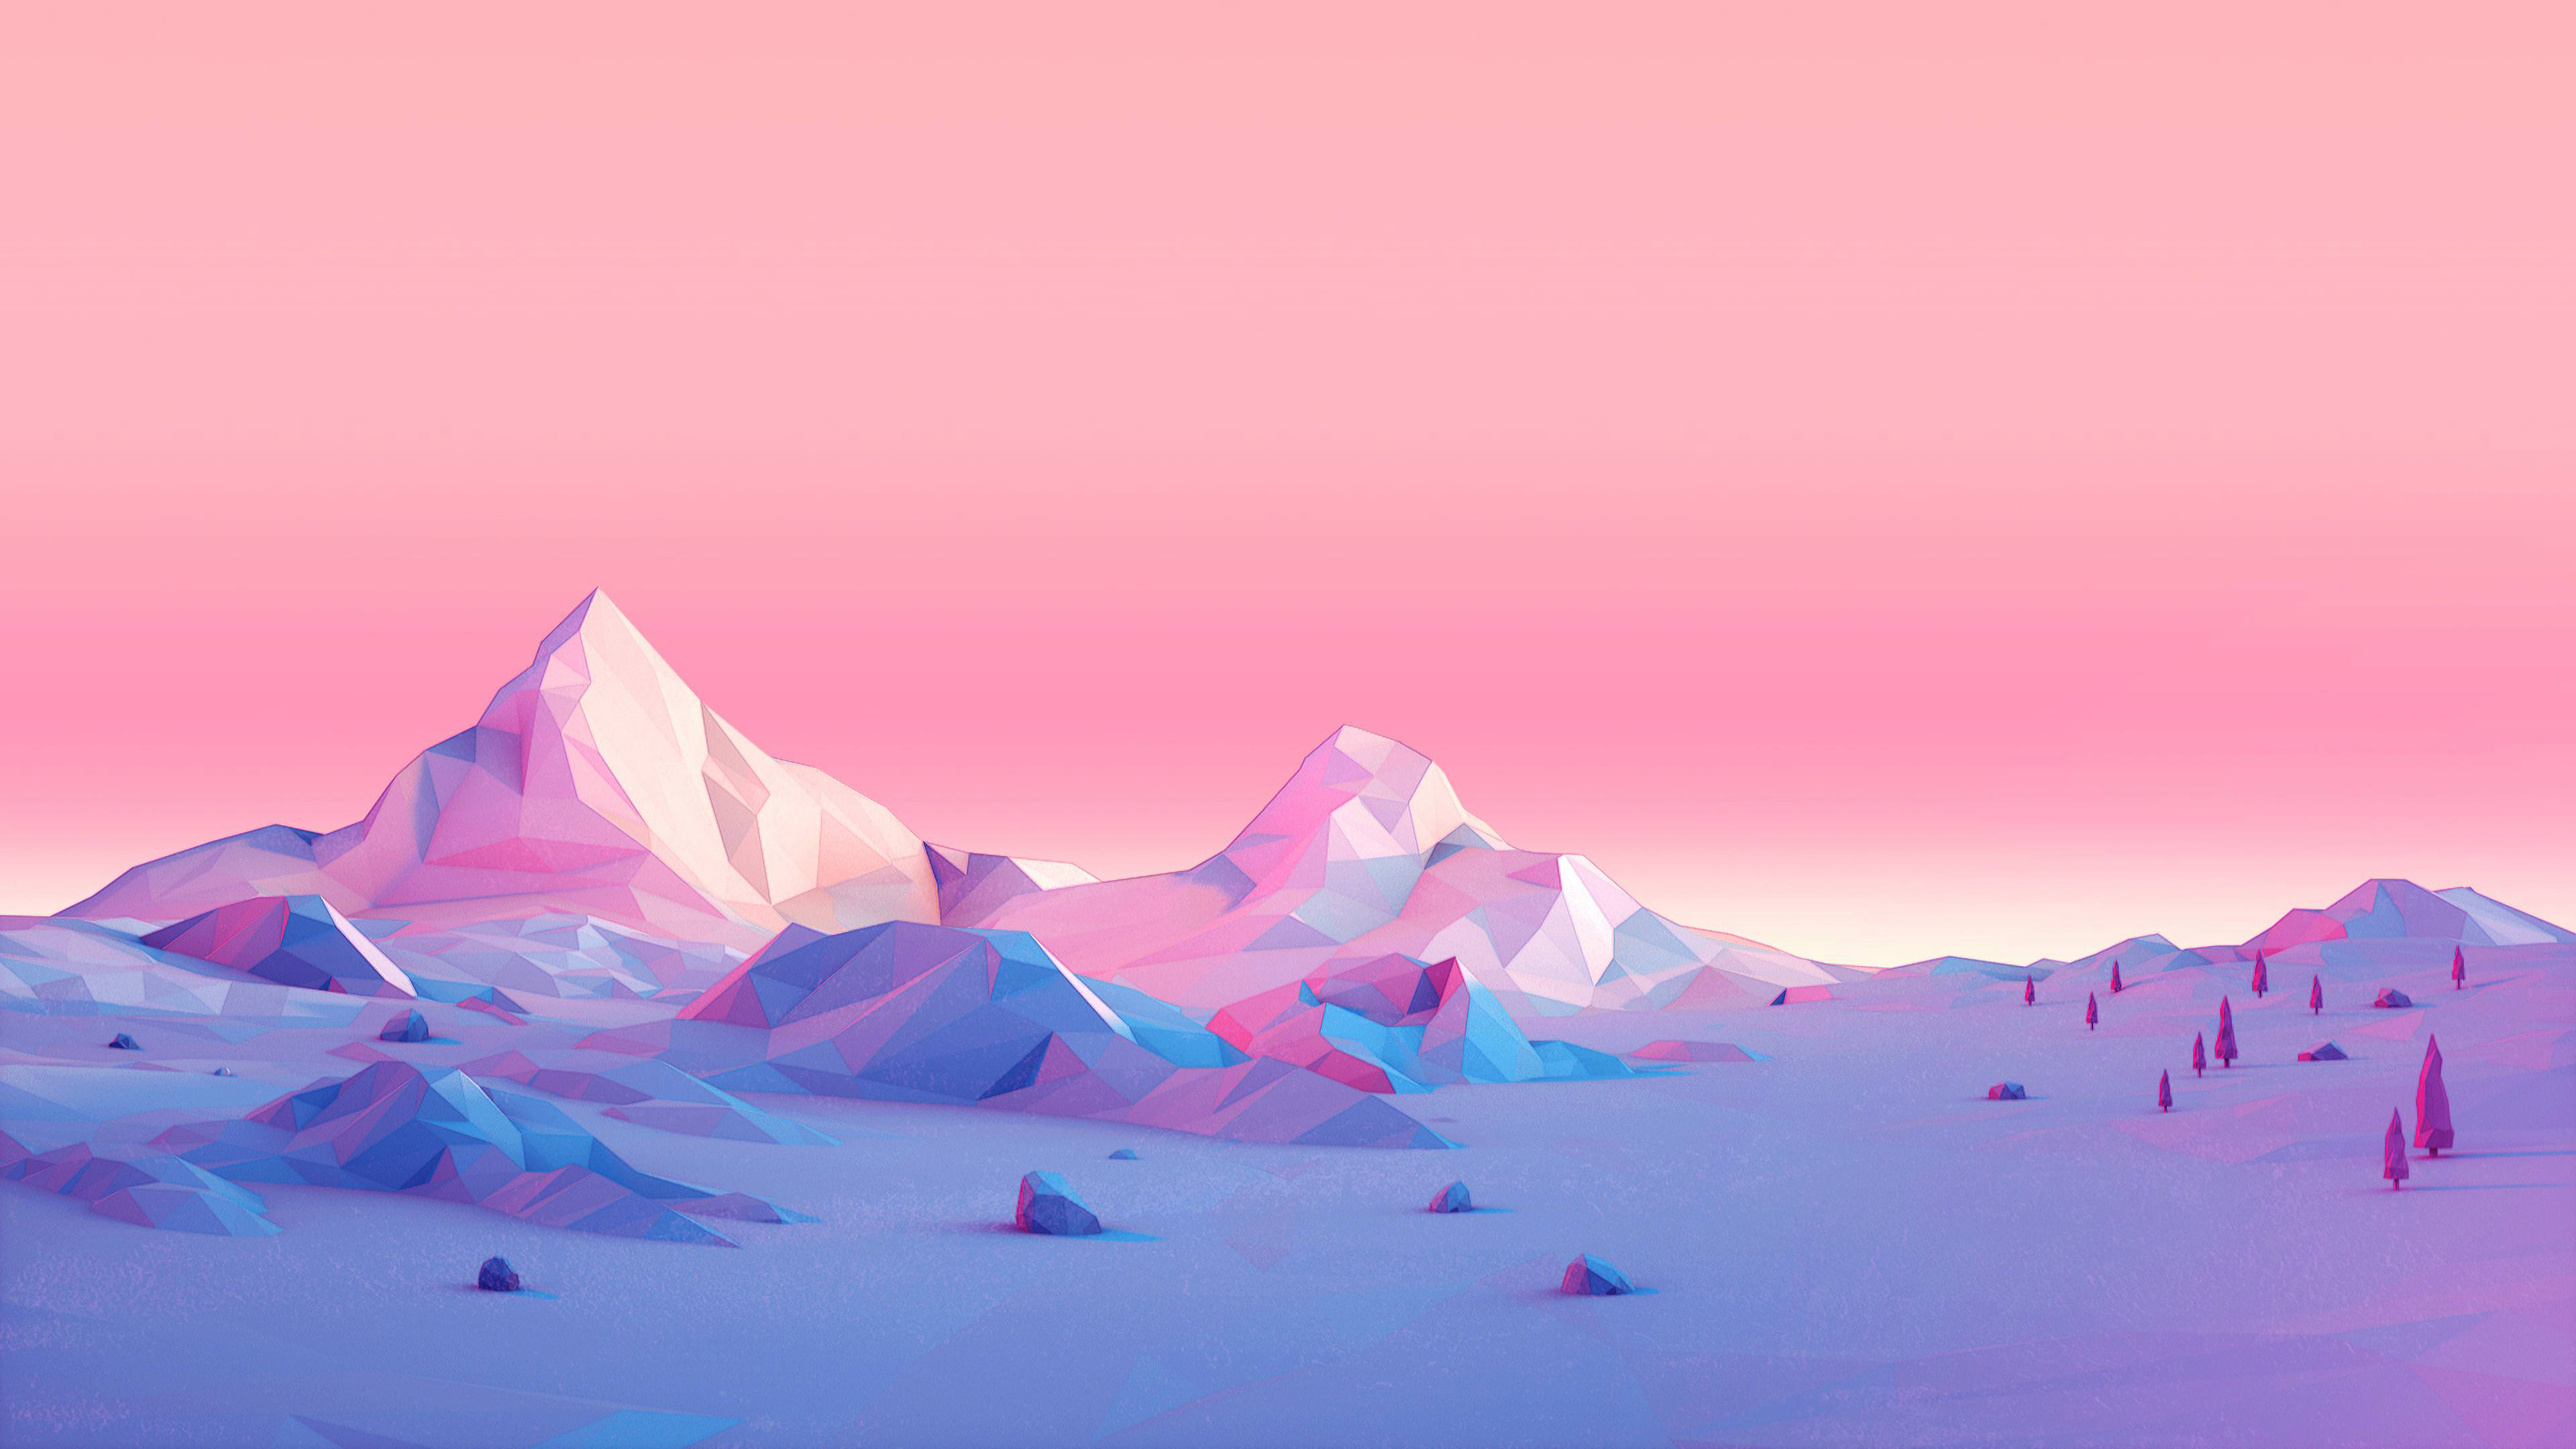 Polygon Mountains Minimalist Hd Artist 4k Wallpapers Images